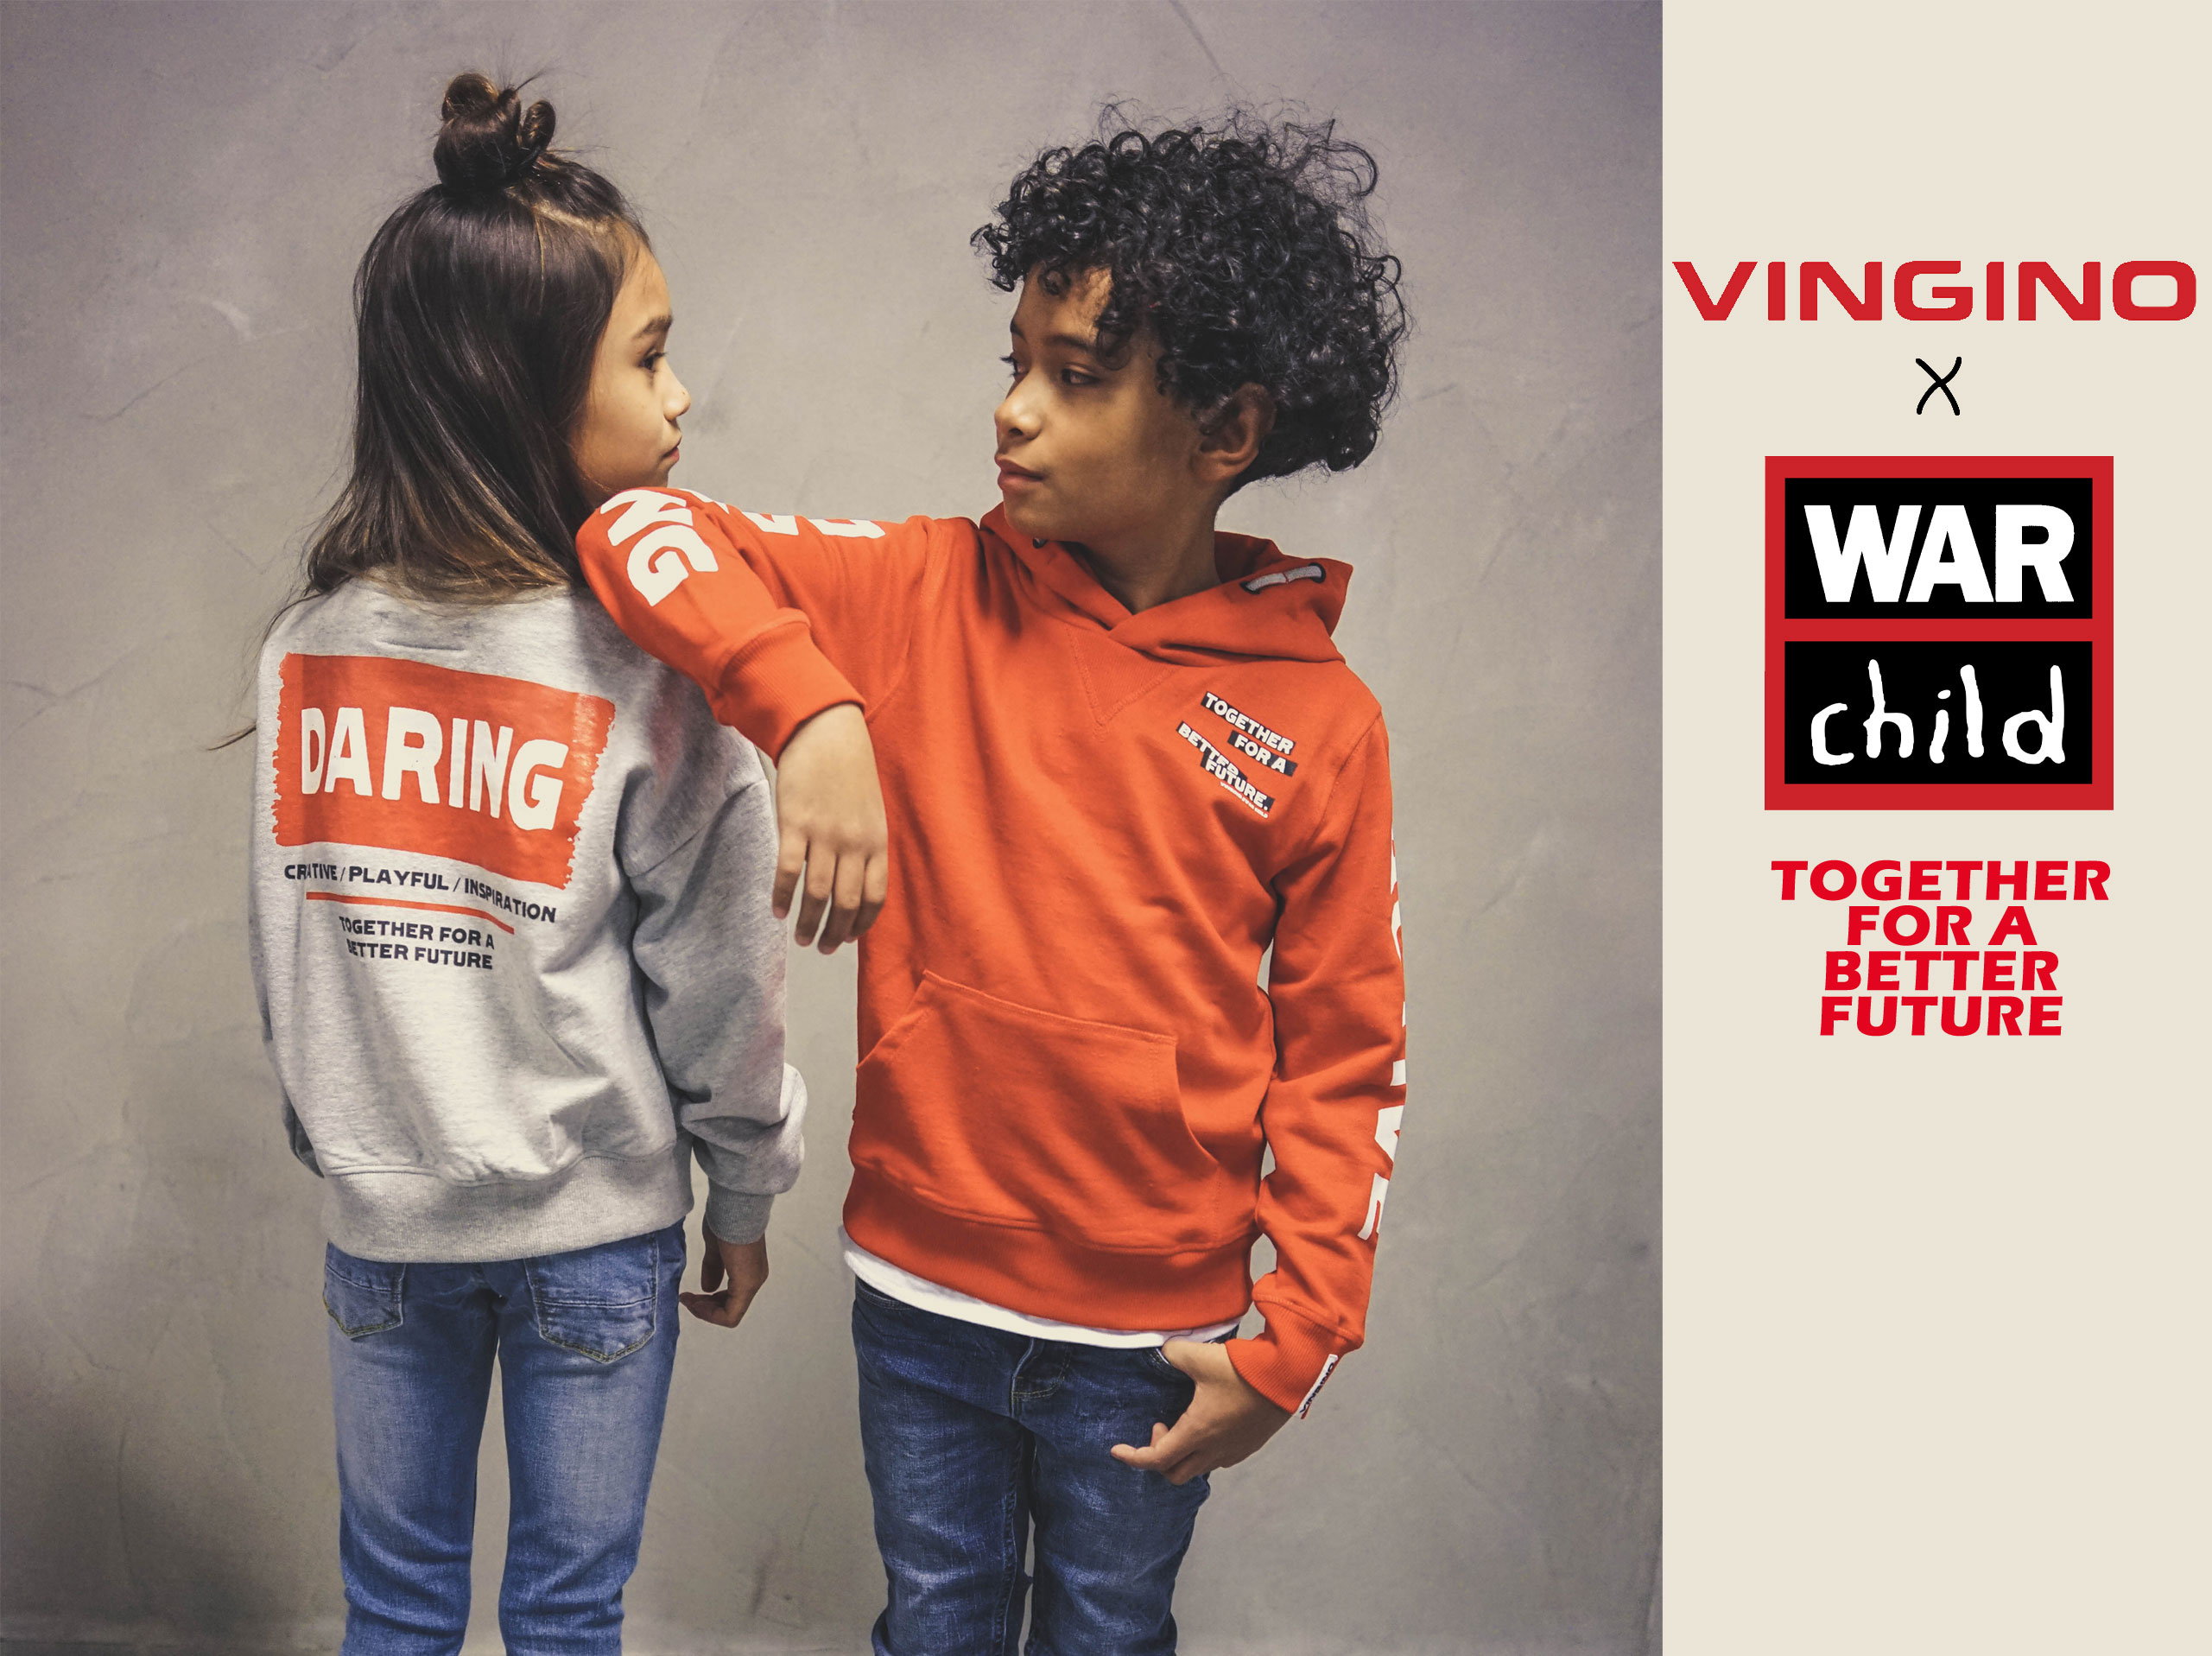 Vingino x War child